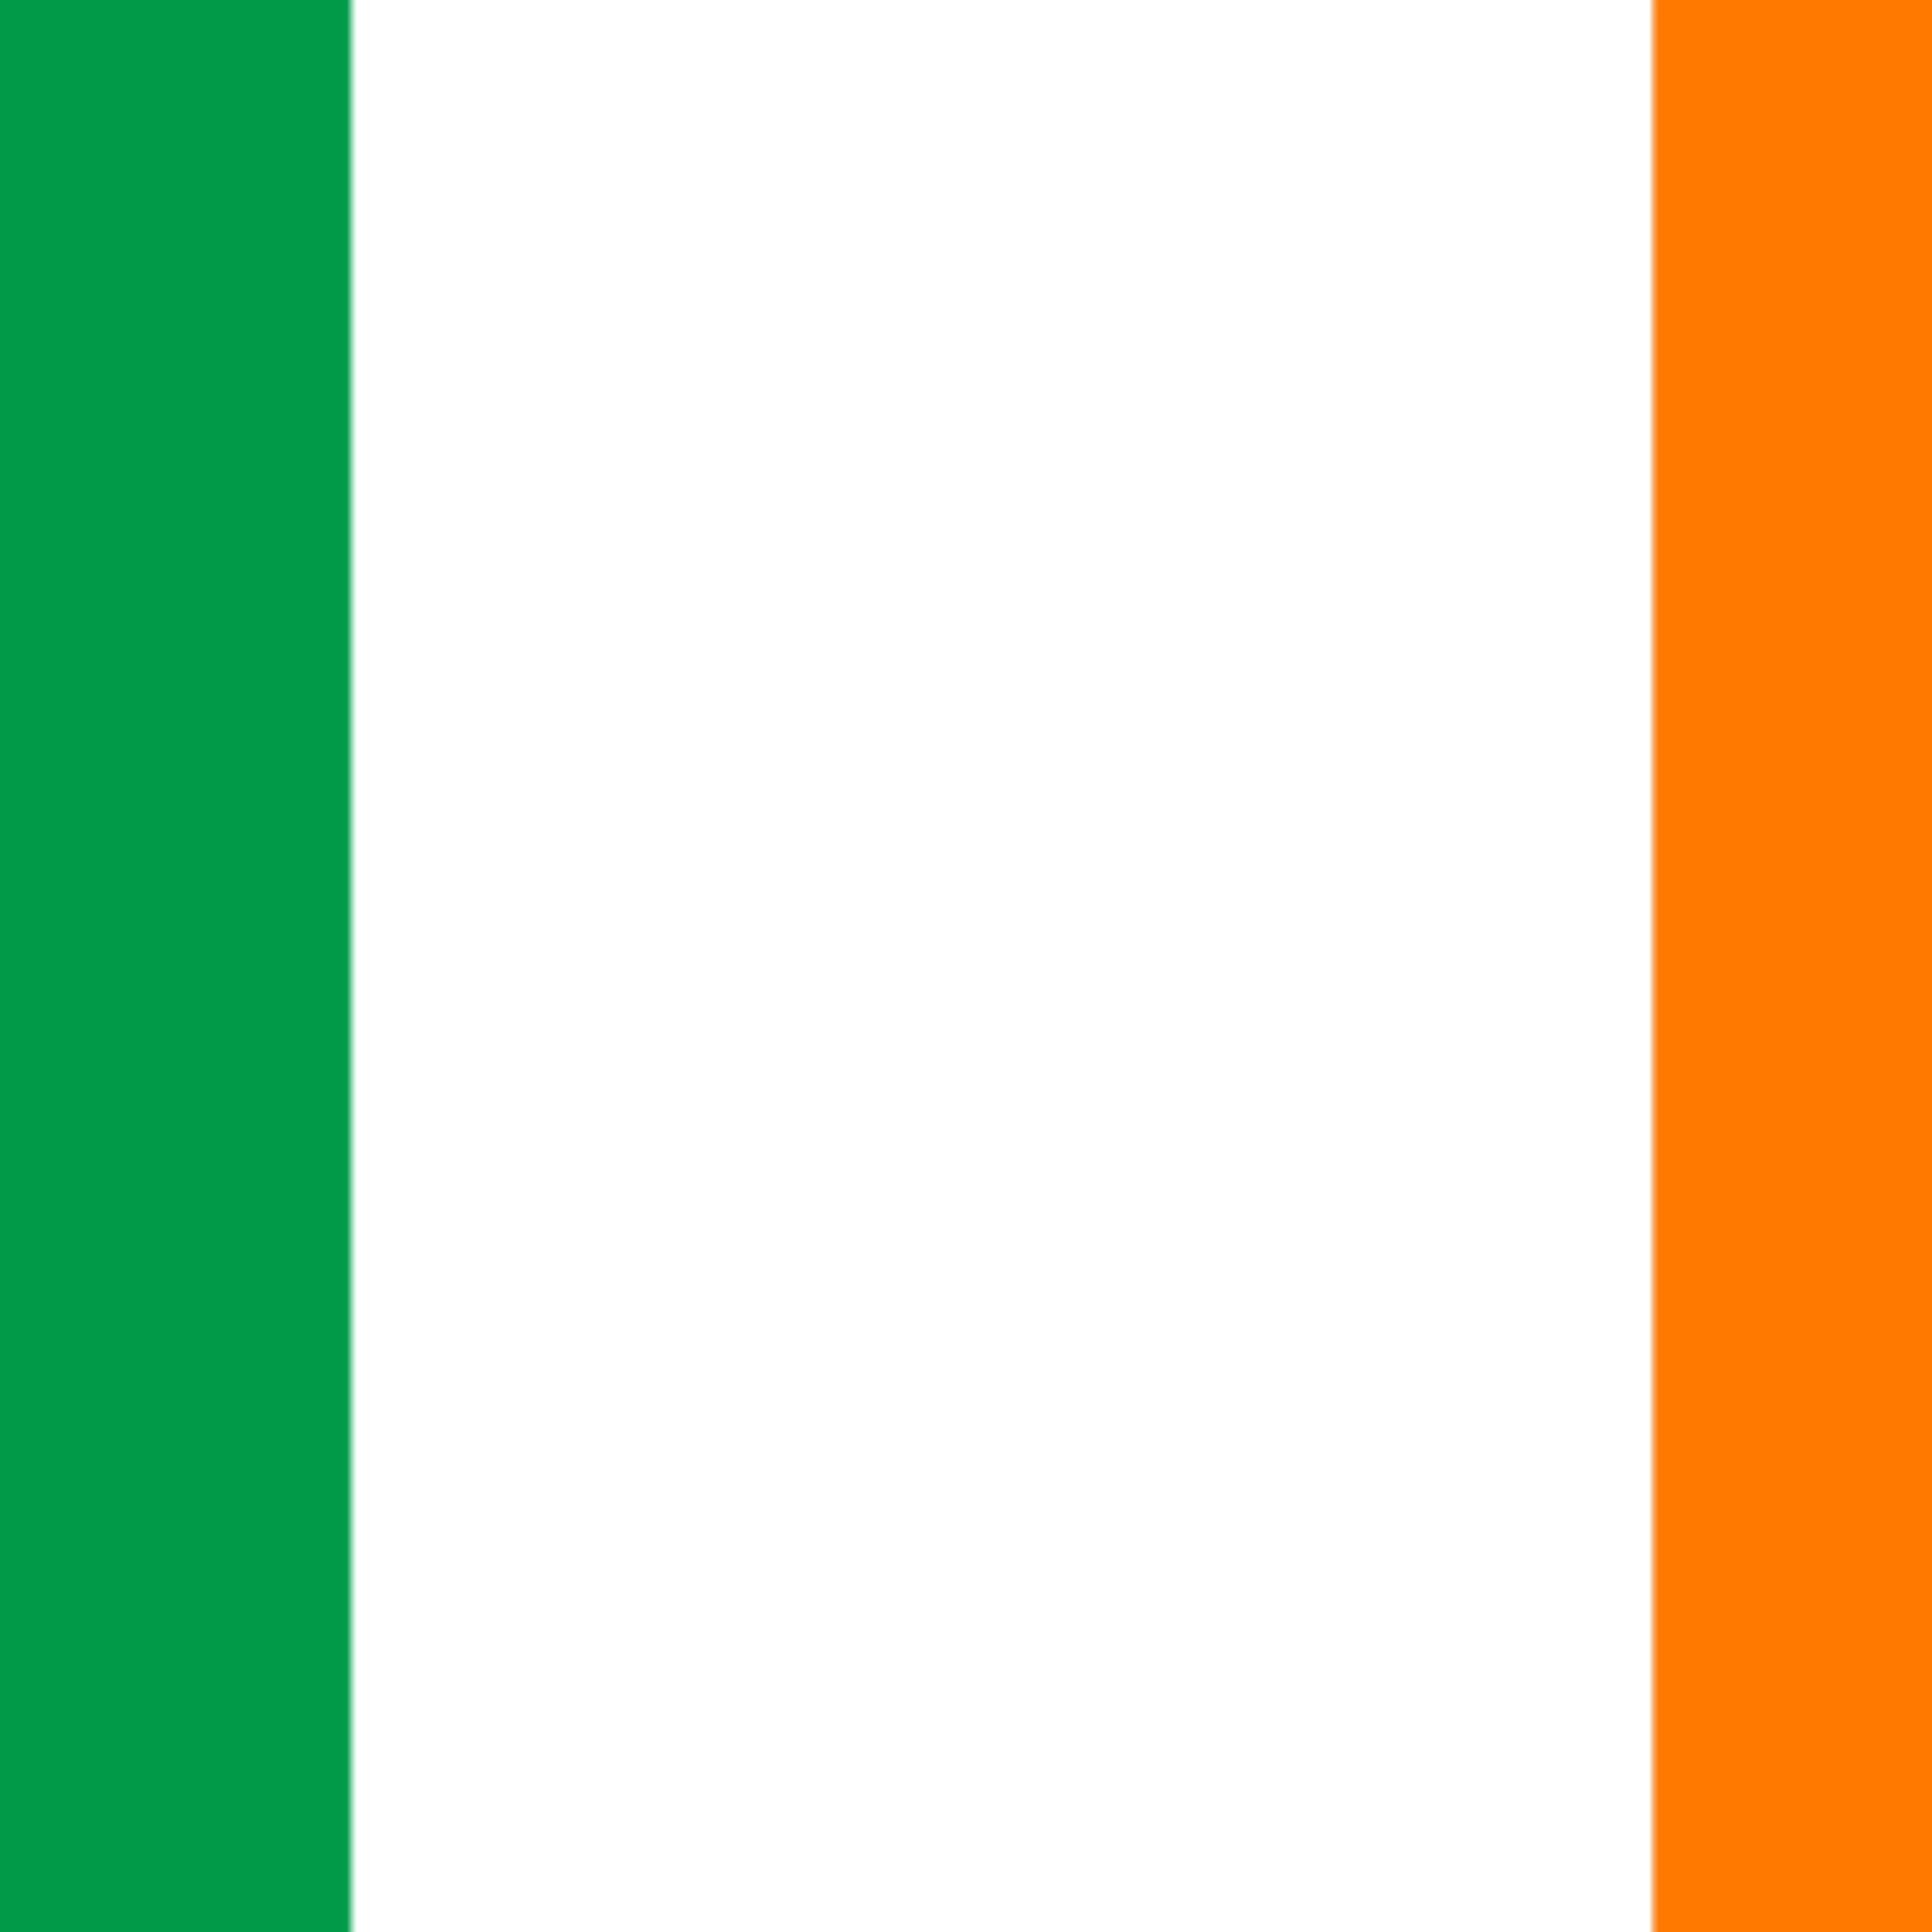 Honorary Consulate of Ireland (Alicante)